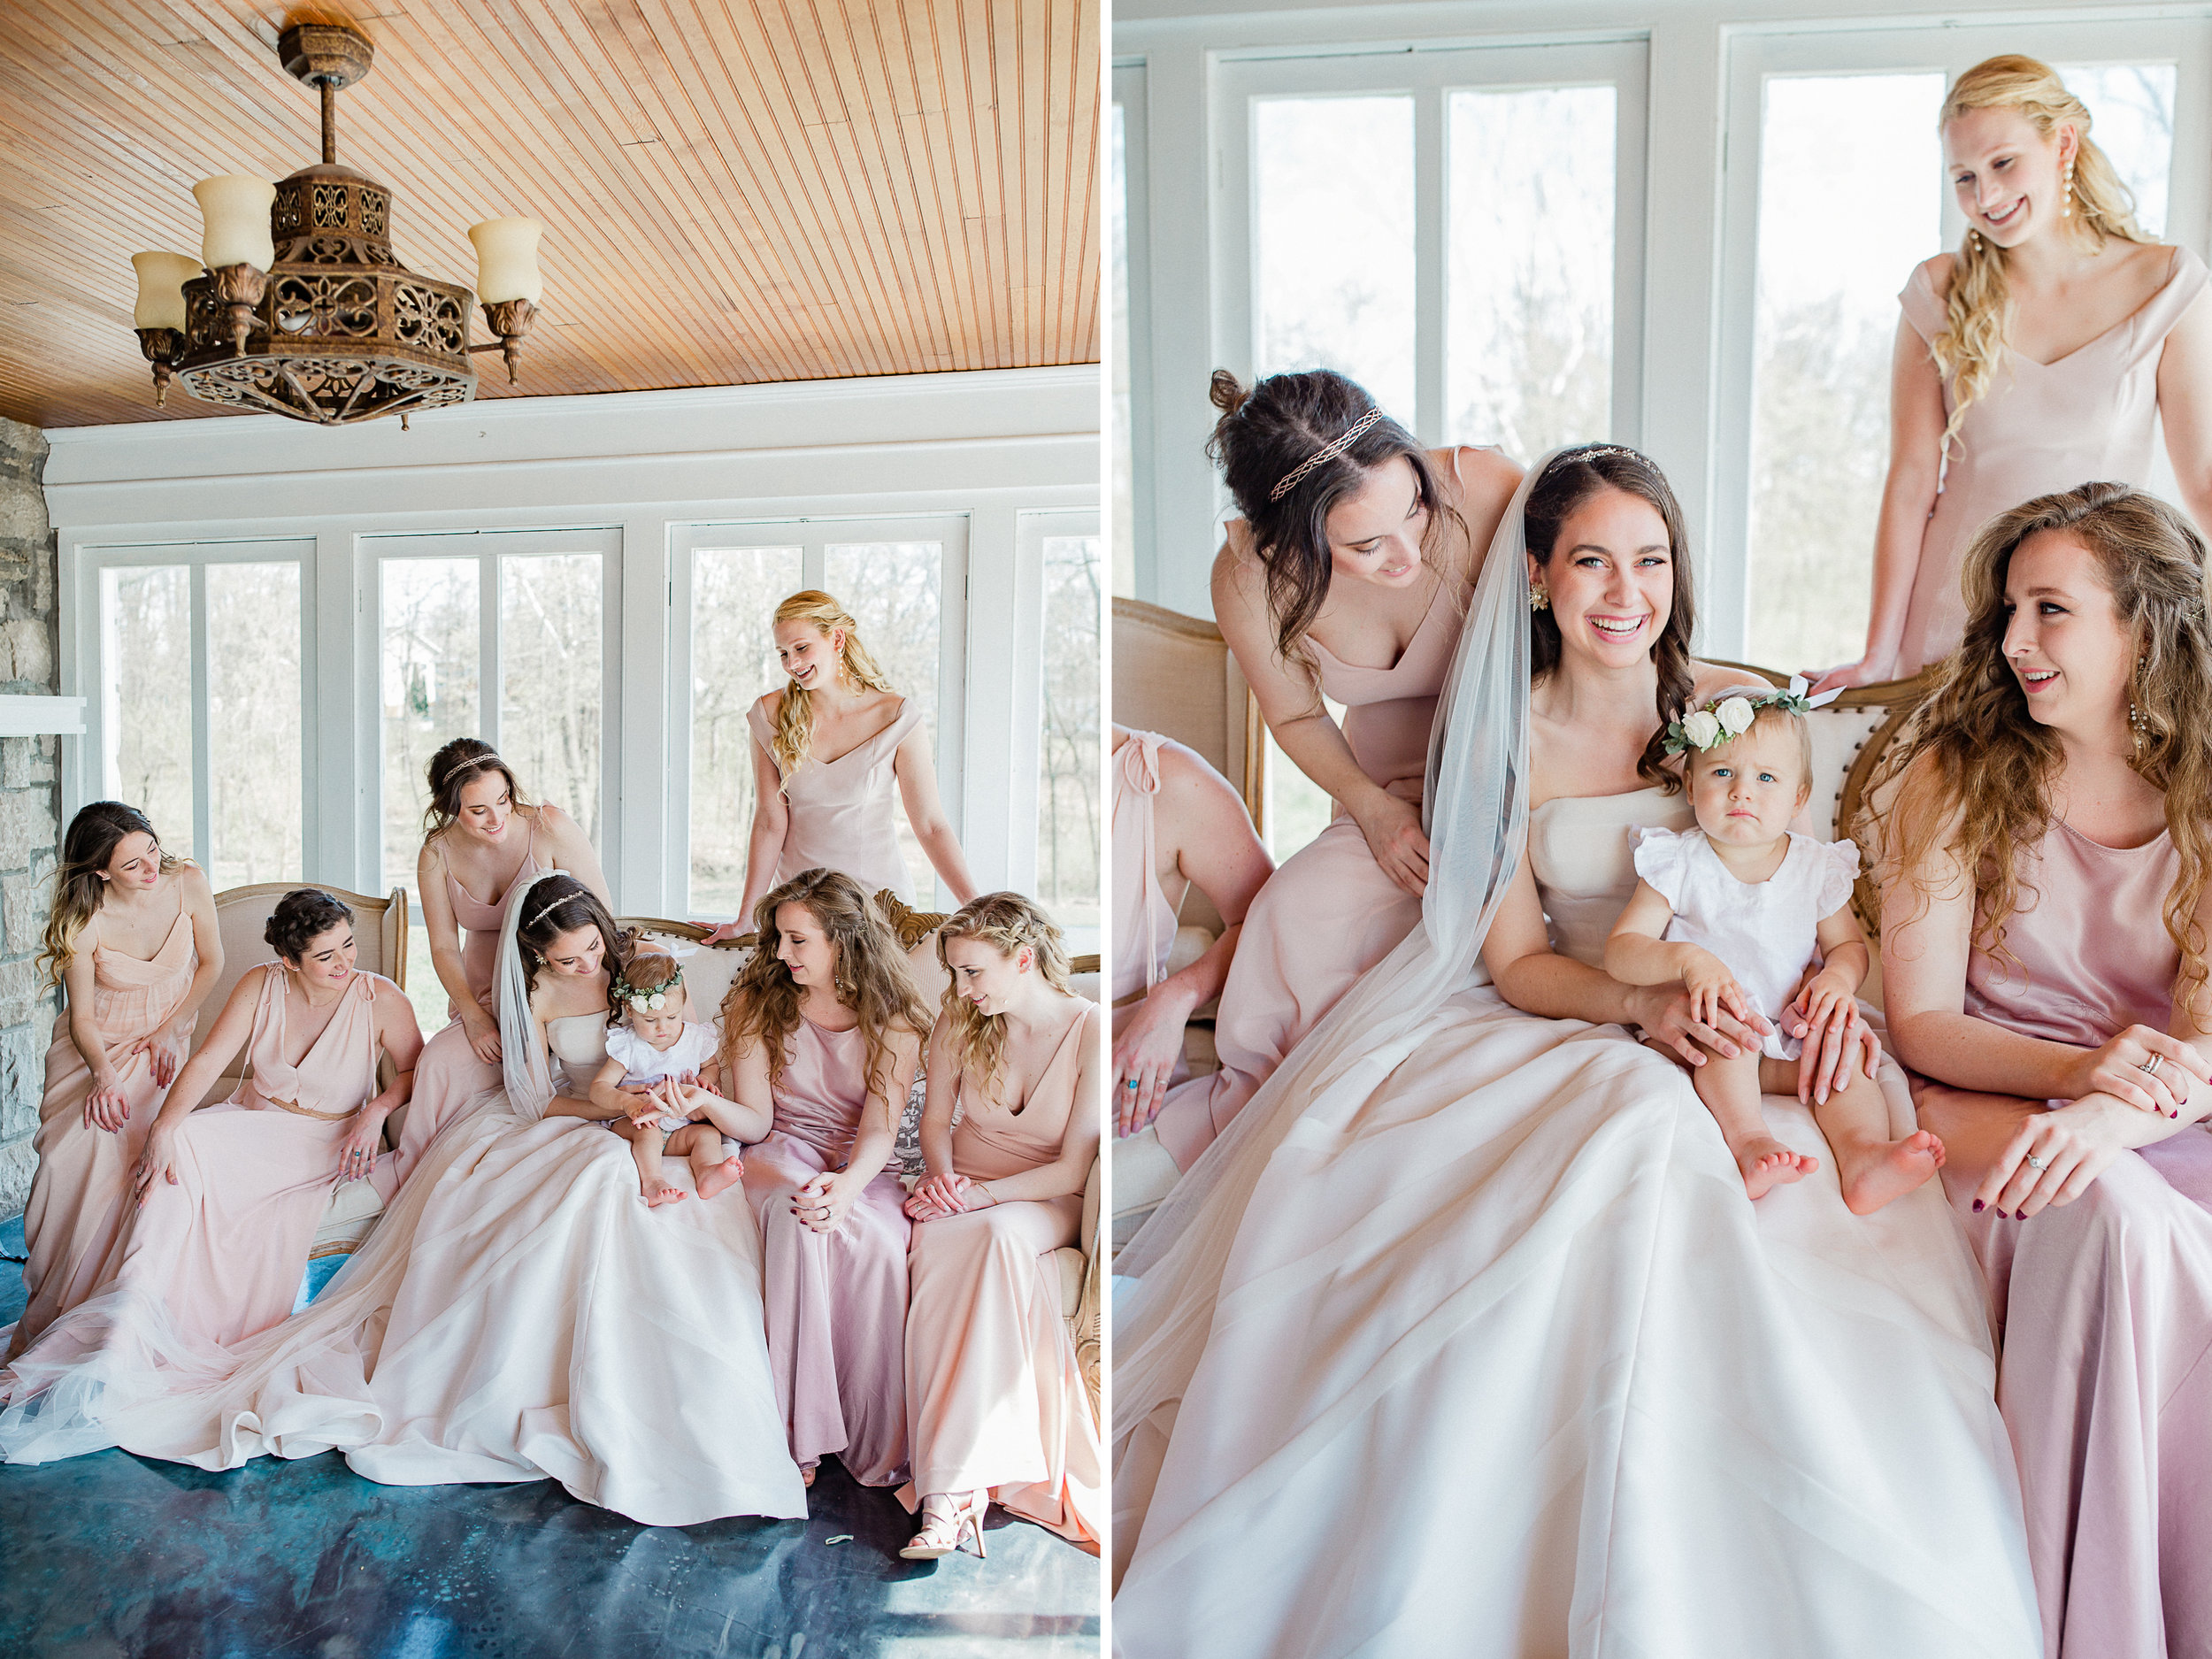 Dorothy_Louise_Photography_Amanda_Ryan_Stone_House_St_Charles_Wedding_Collage23.jpg